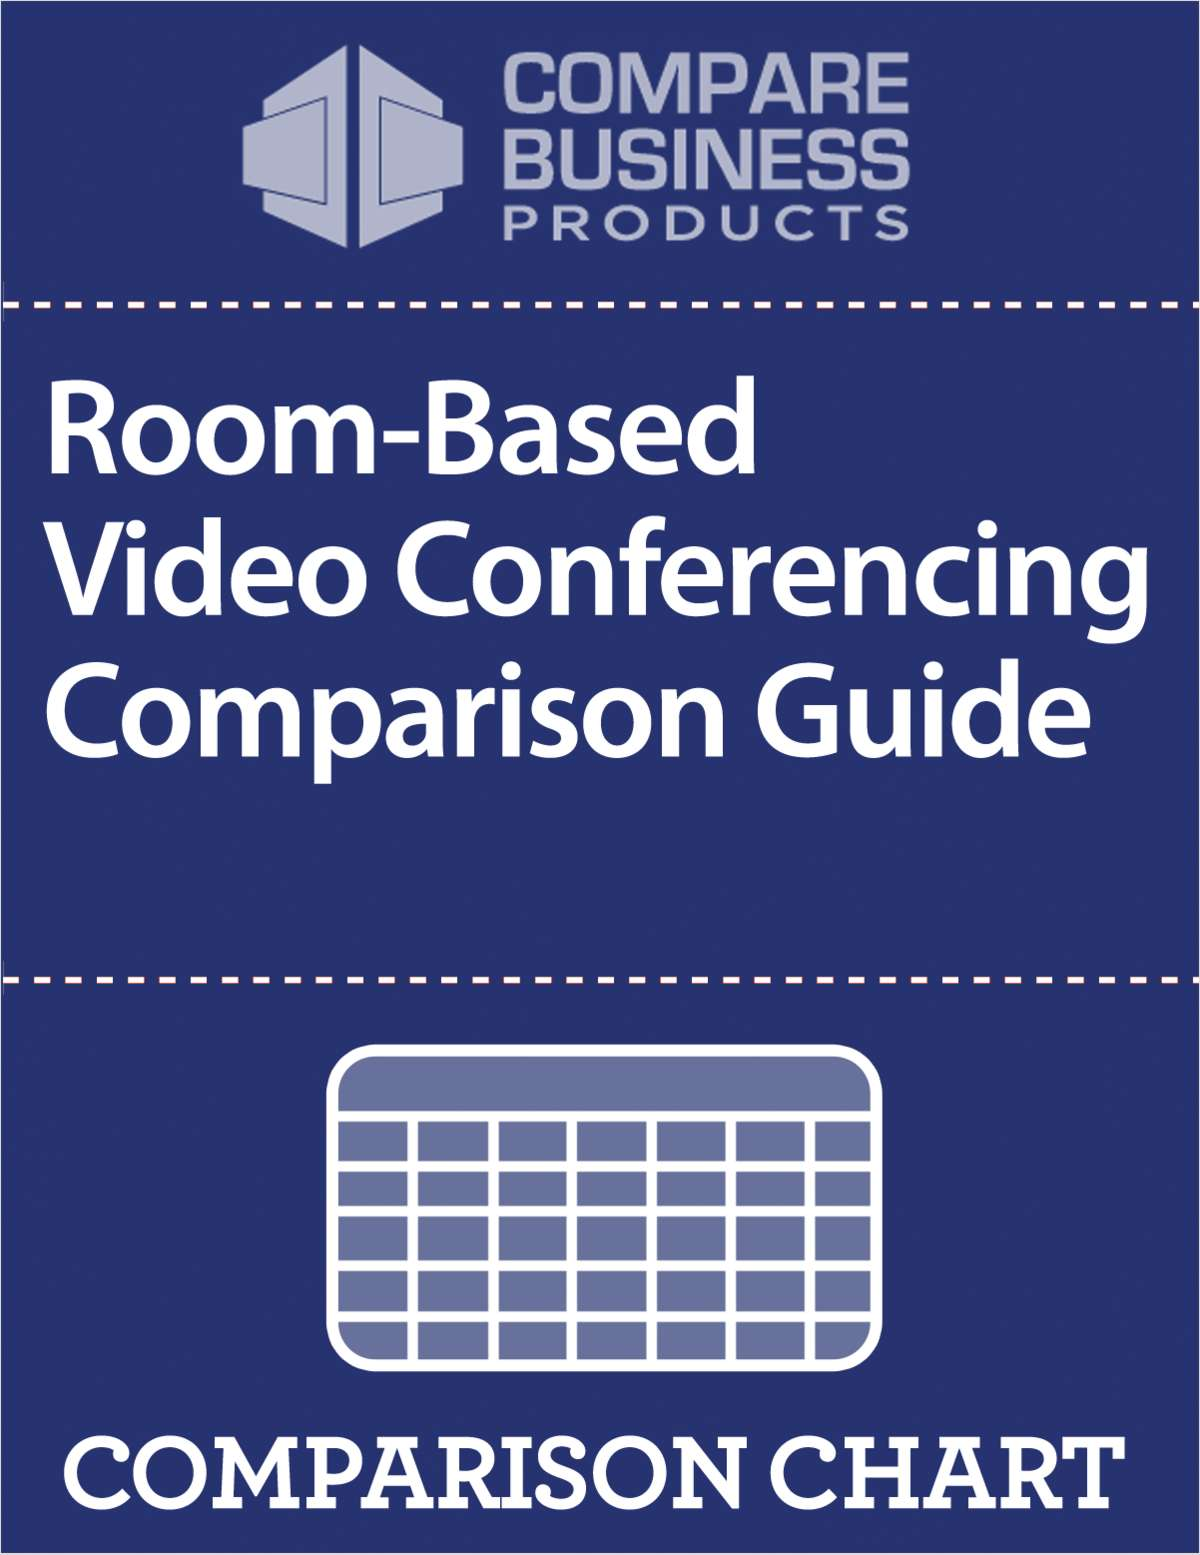 Room-Based Video Conferencing Comparison Guide